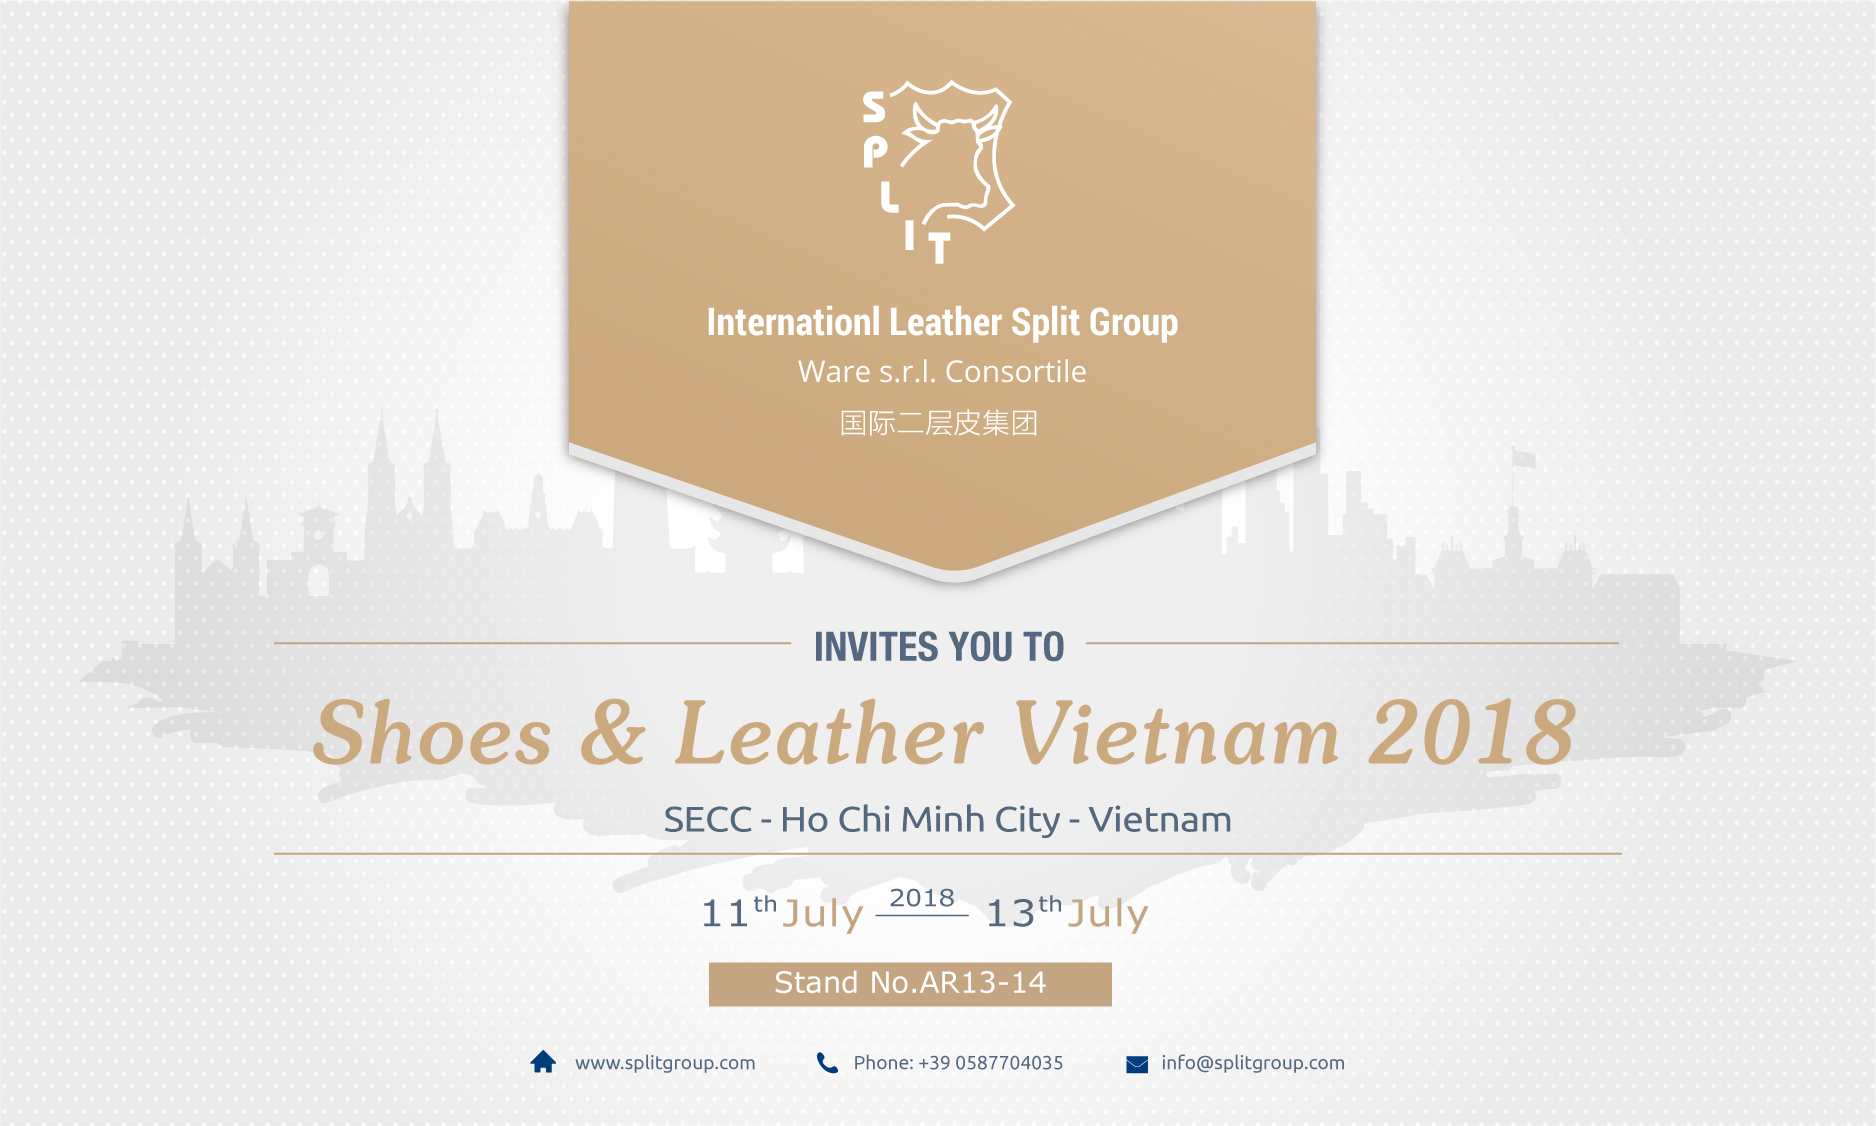 Vietnam Invitation